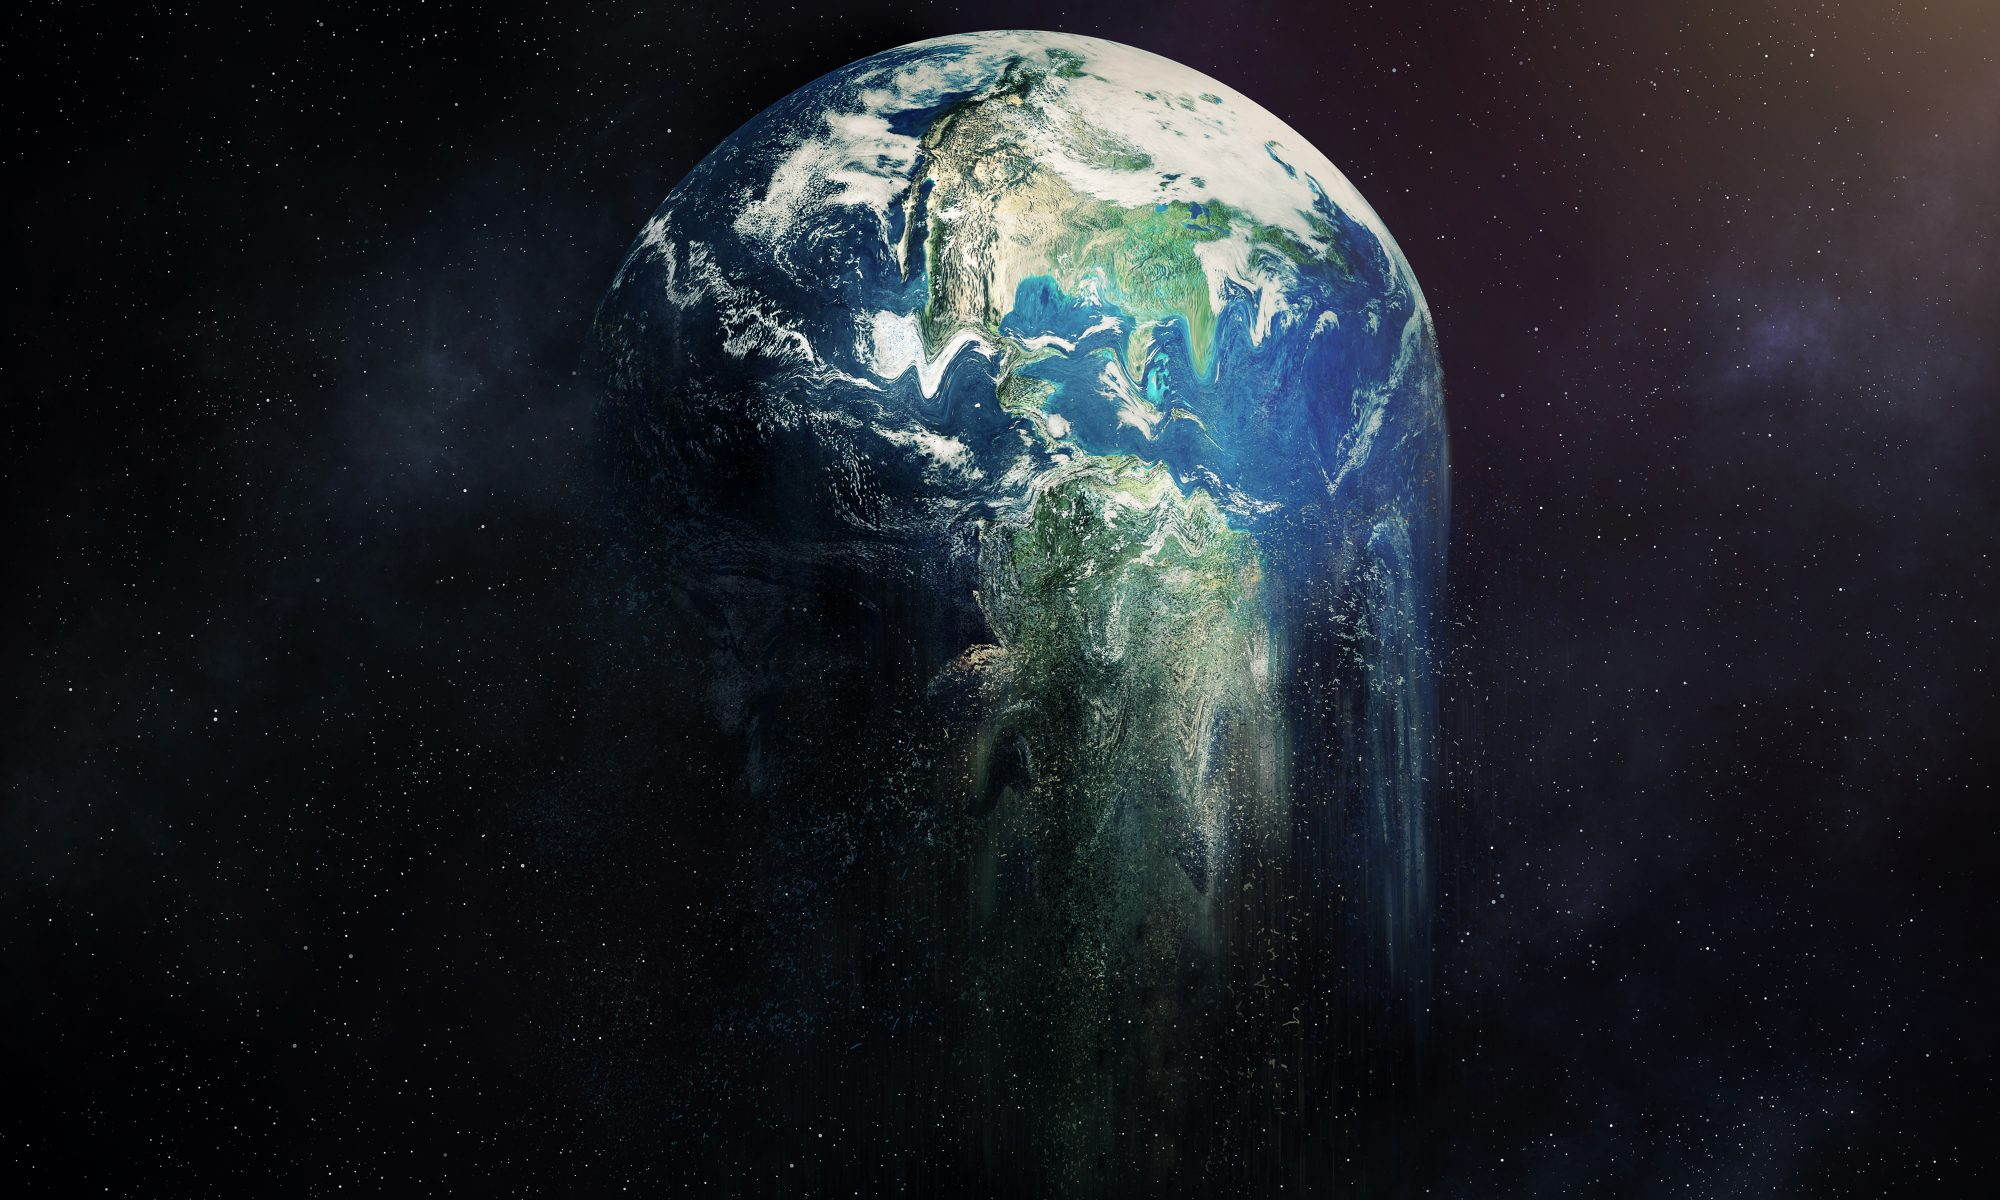 The earth surrounded by stars while falling apart